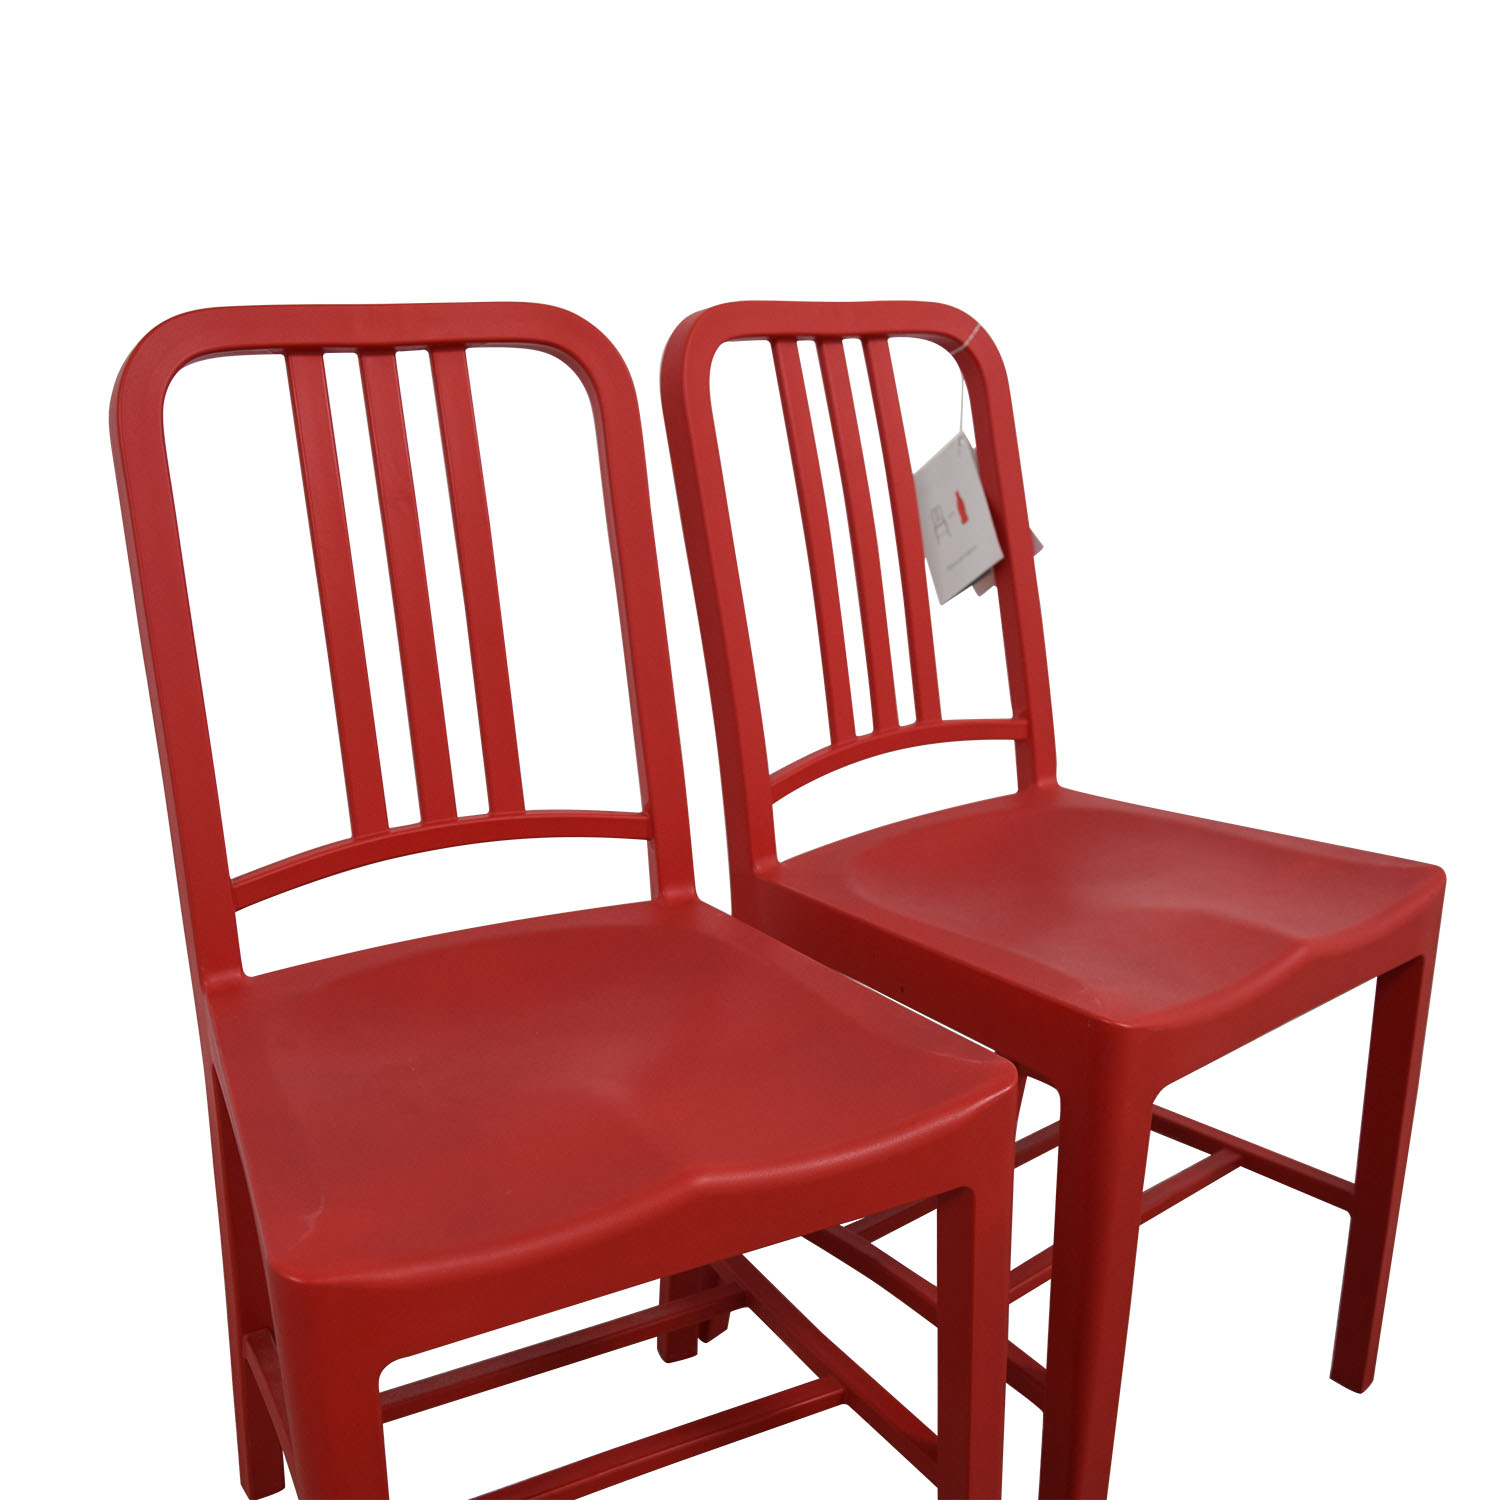 buy Emeco Emeco 111 Navy Recycled Red Chairs online